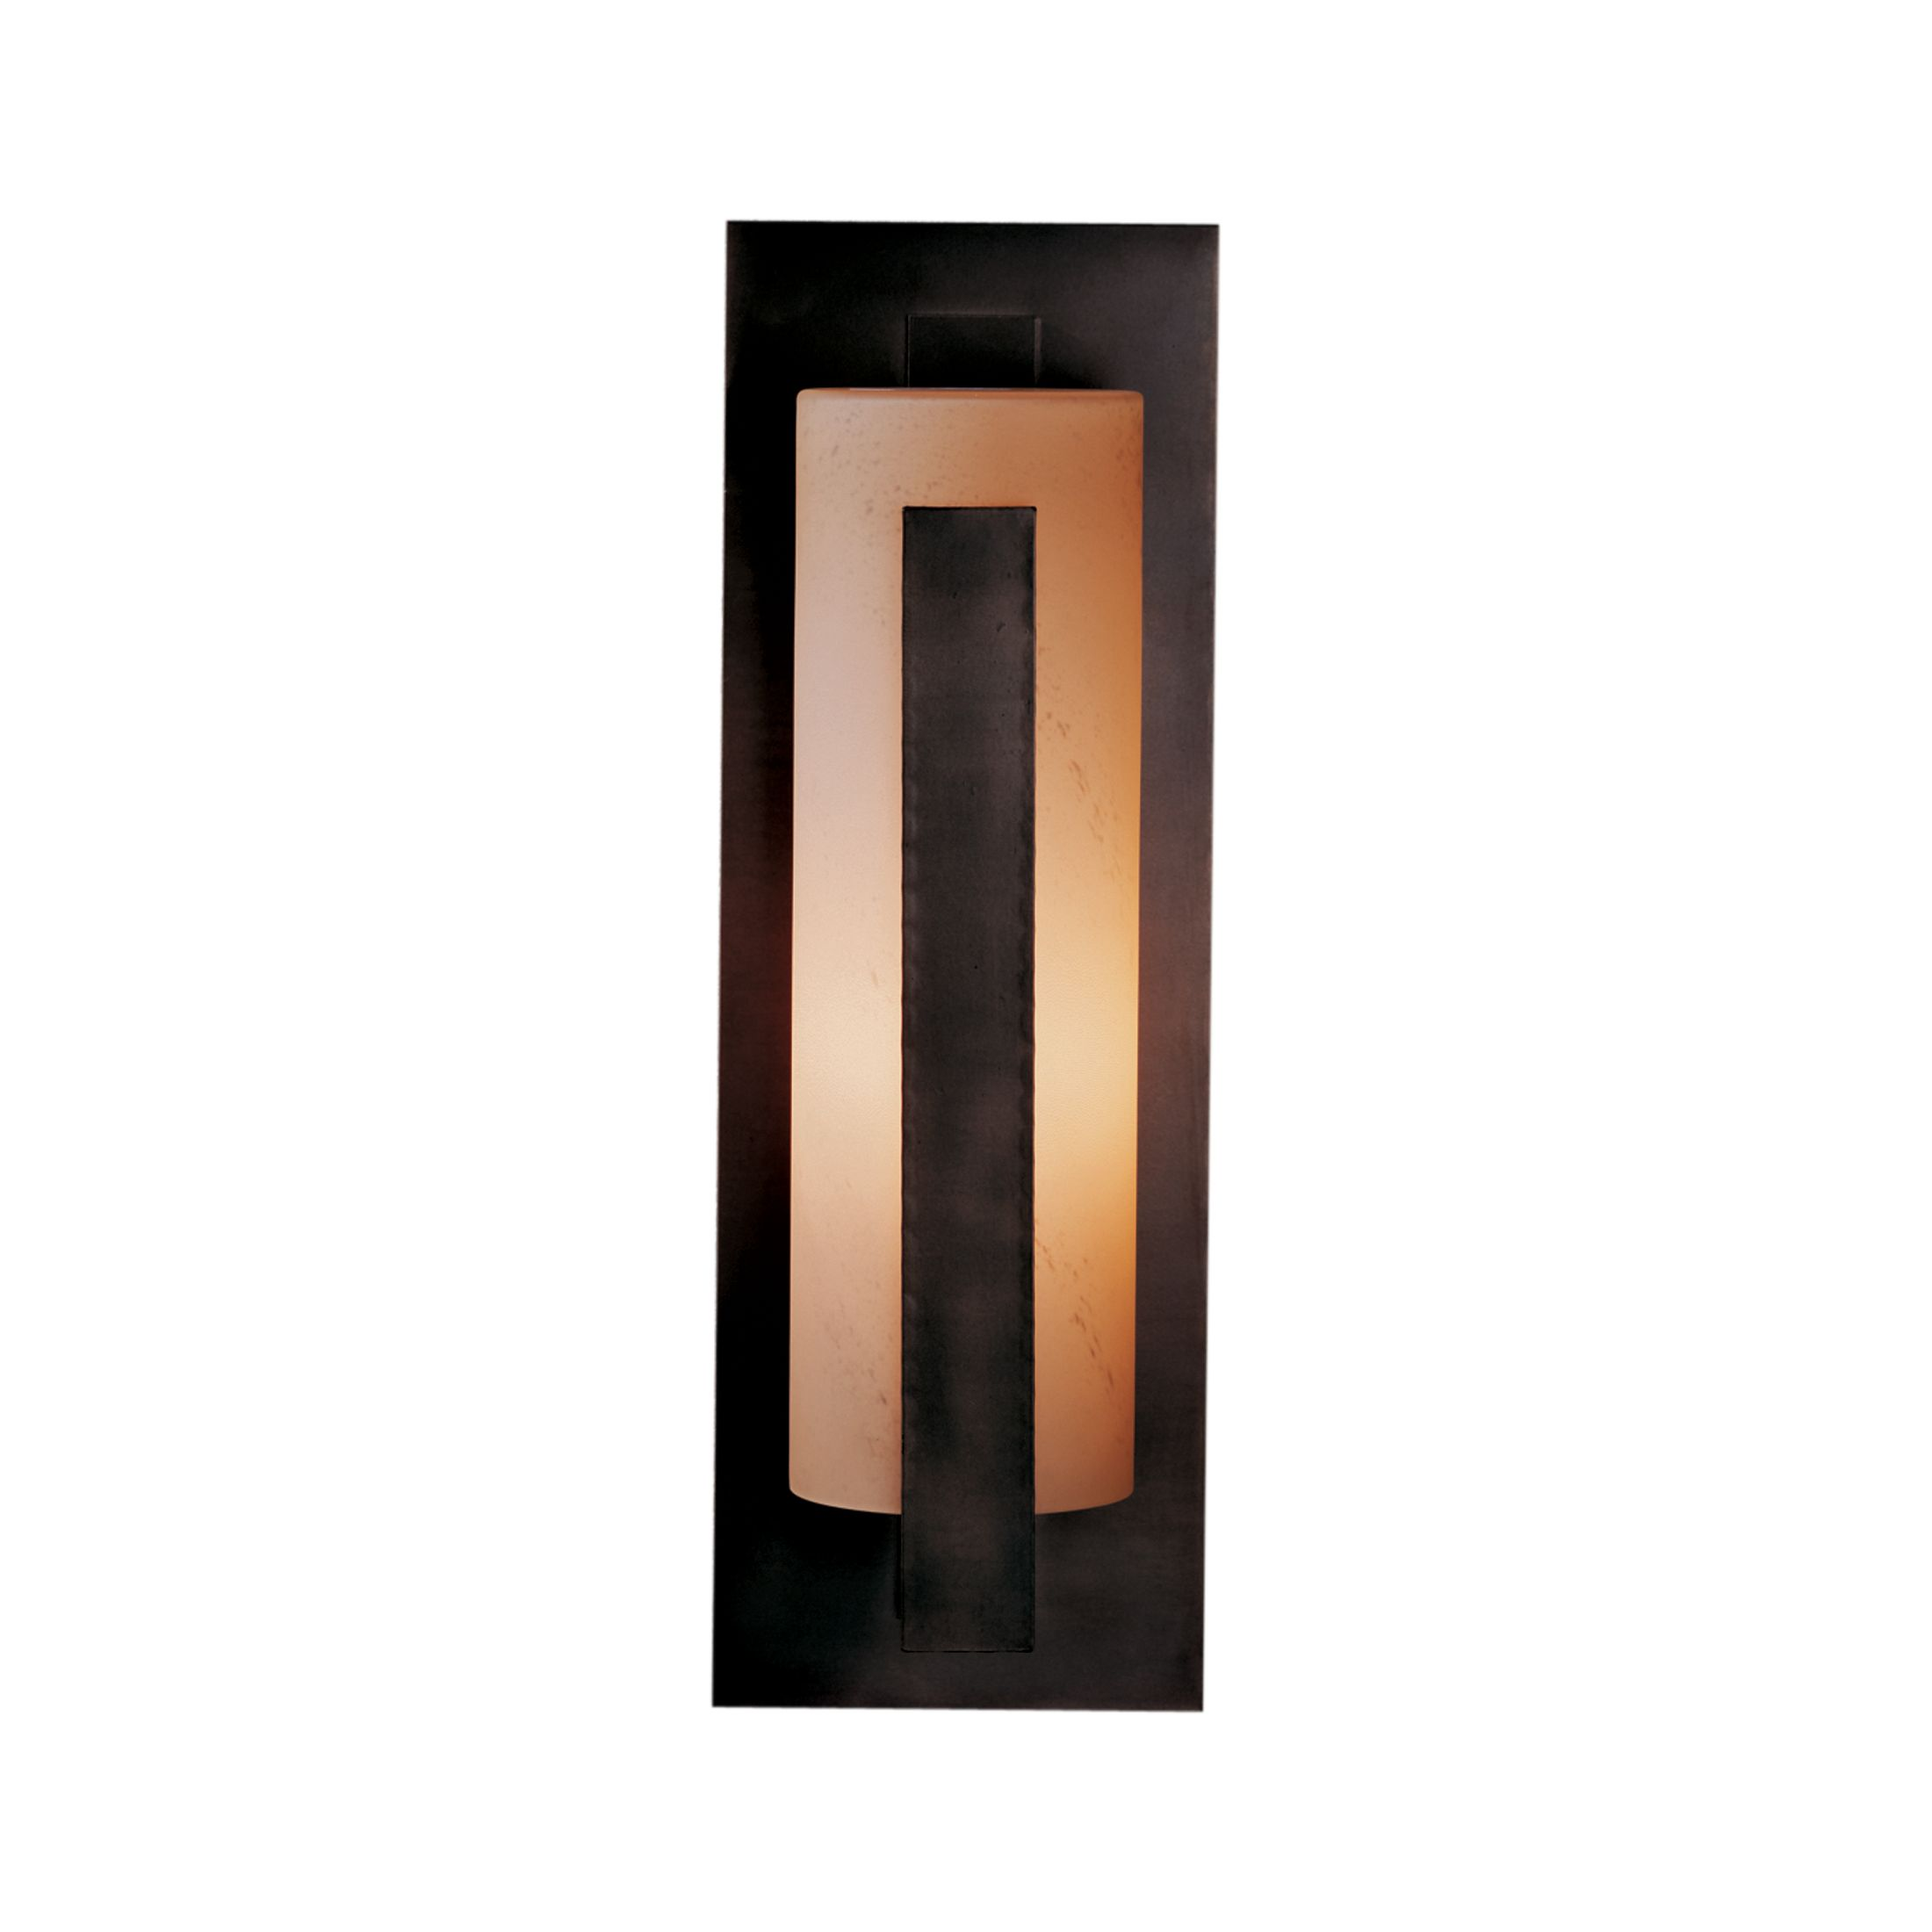 Thumbnail for Forged Vertical Bars Large Interior Sconce